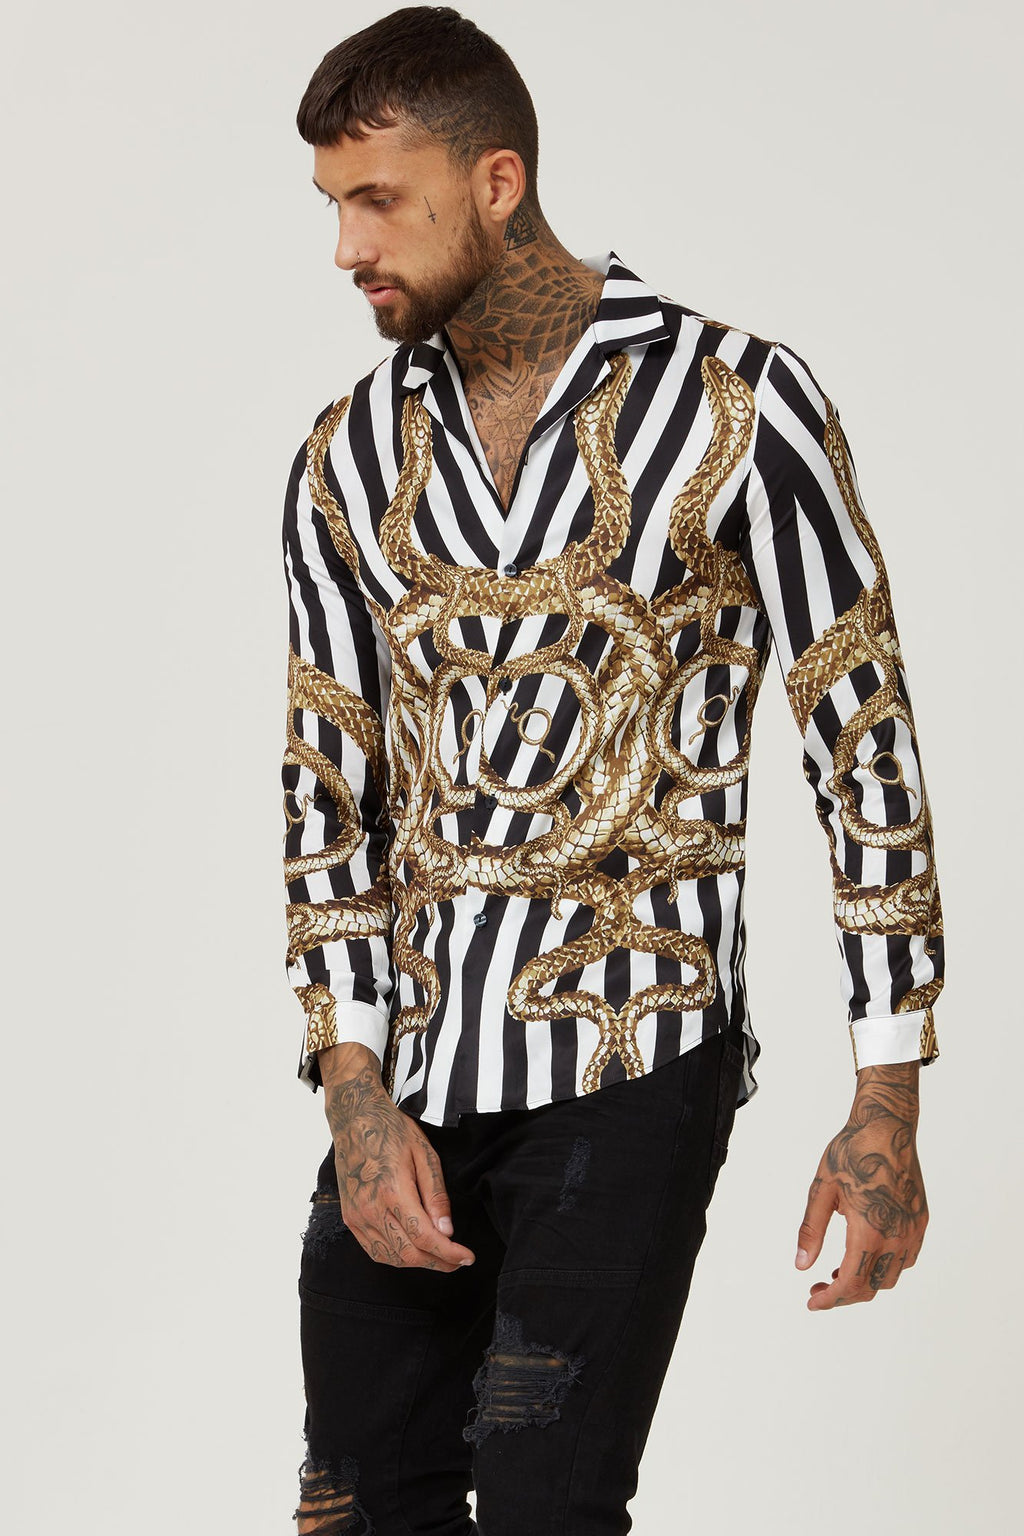 Hermano Snake Cuban Long Sleeve Shirt with Stripes